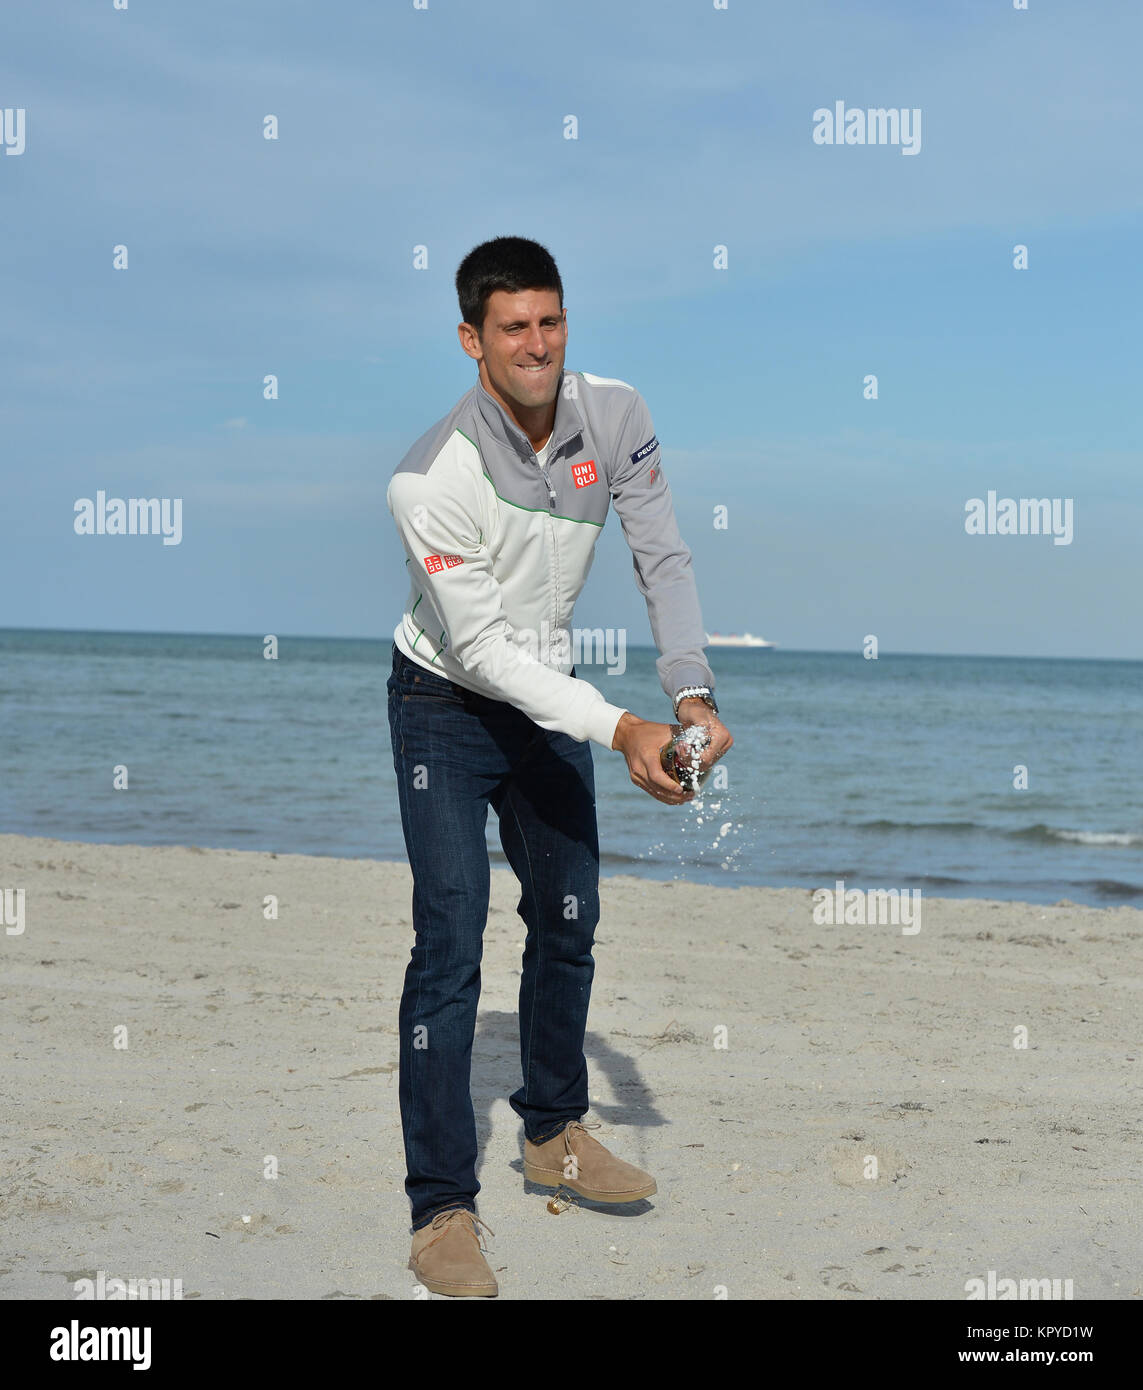 Key Biscayne Fl March 30 Novak Djokovic Of Serbia Makes A Stock Photo Alamy